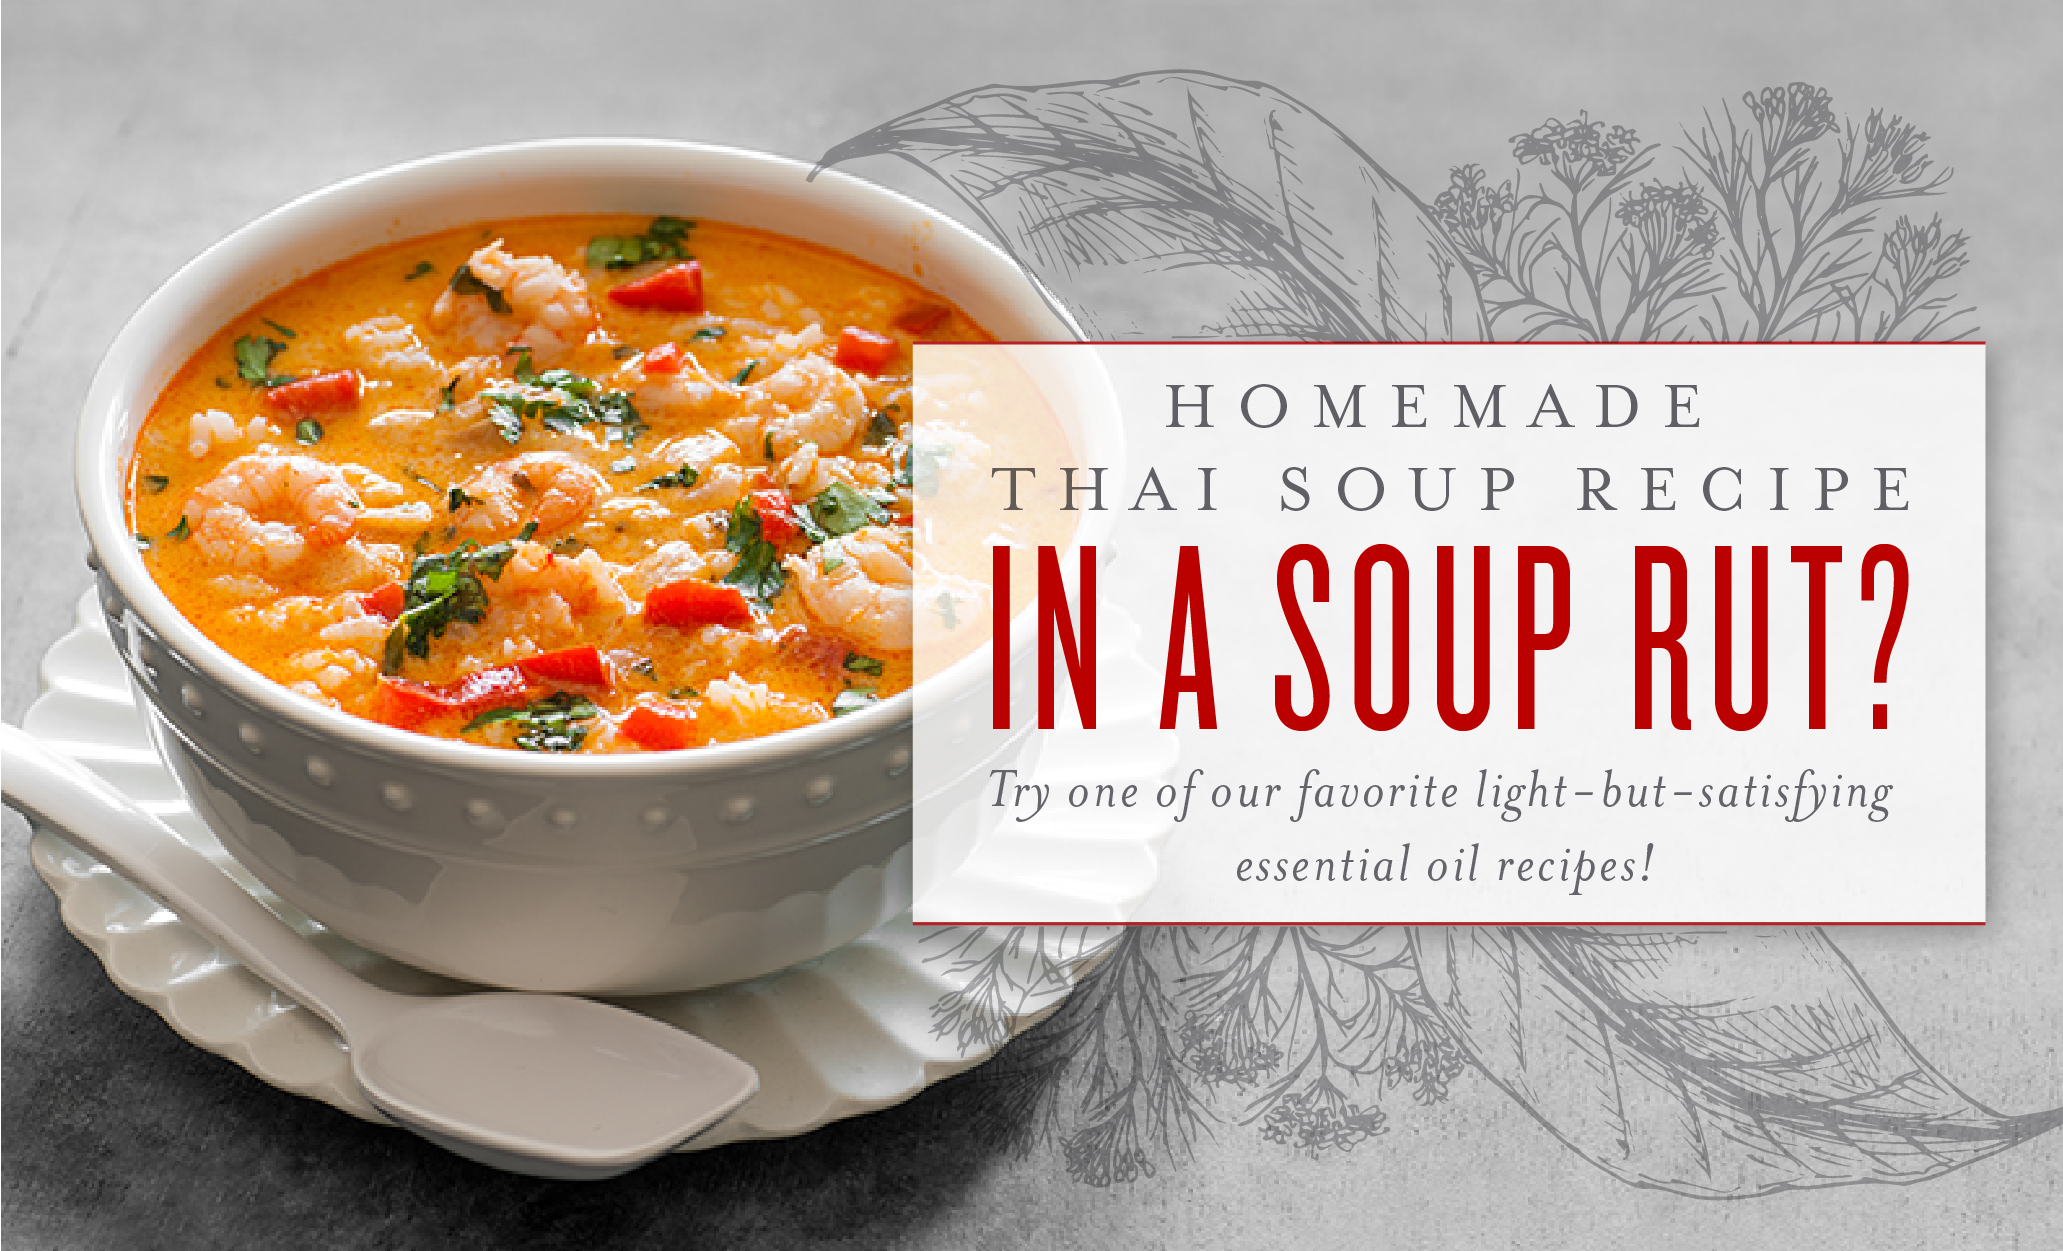 See more at  https://www.youngliving.com/blog/homemade-thai-soup-recipe/